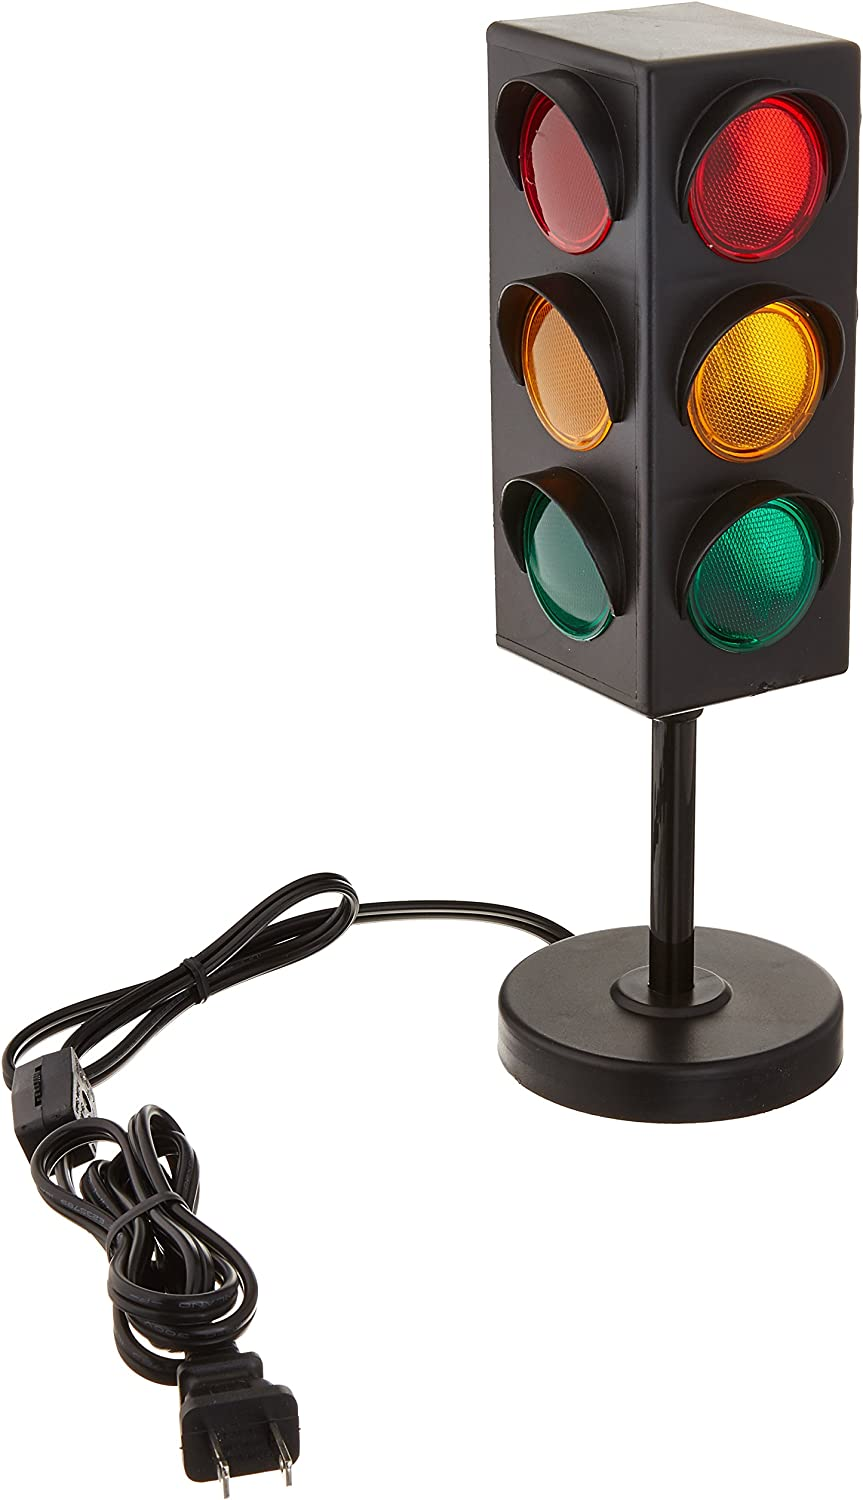 "8"" TRAFFIC LIGHT TABLE LAMP"